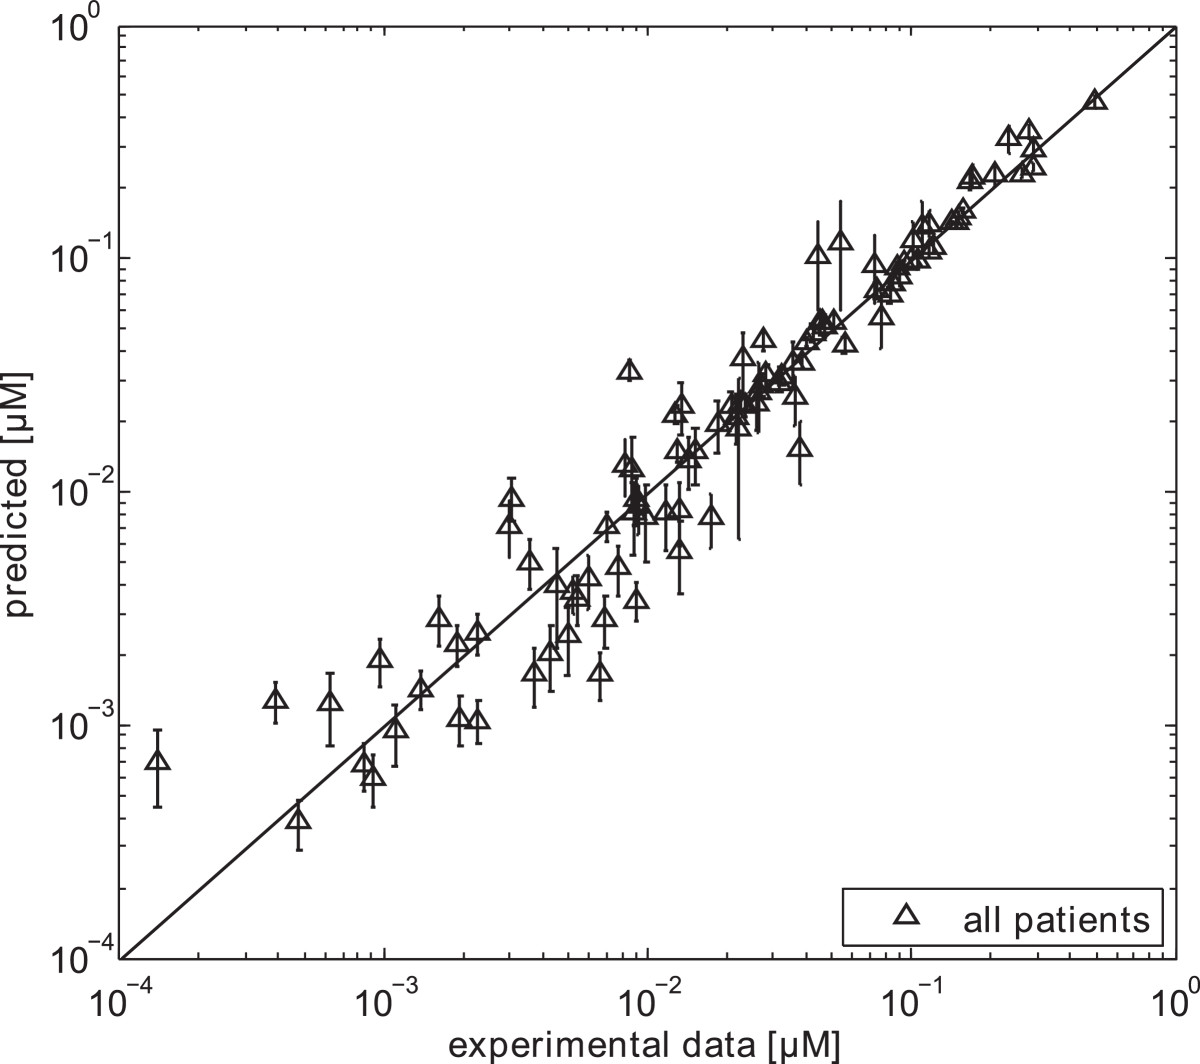 http://static-content.springer.com/image/art%3A10.1186%2F2193-9616-1-6/MediaObjects/40203_2013_Article_6_Fig5_HTML.jpg